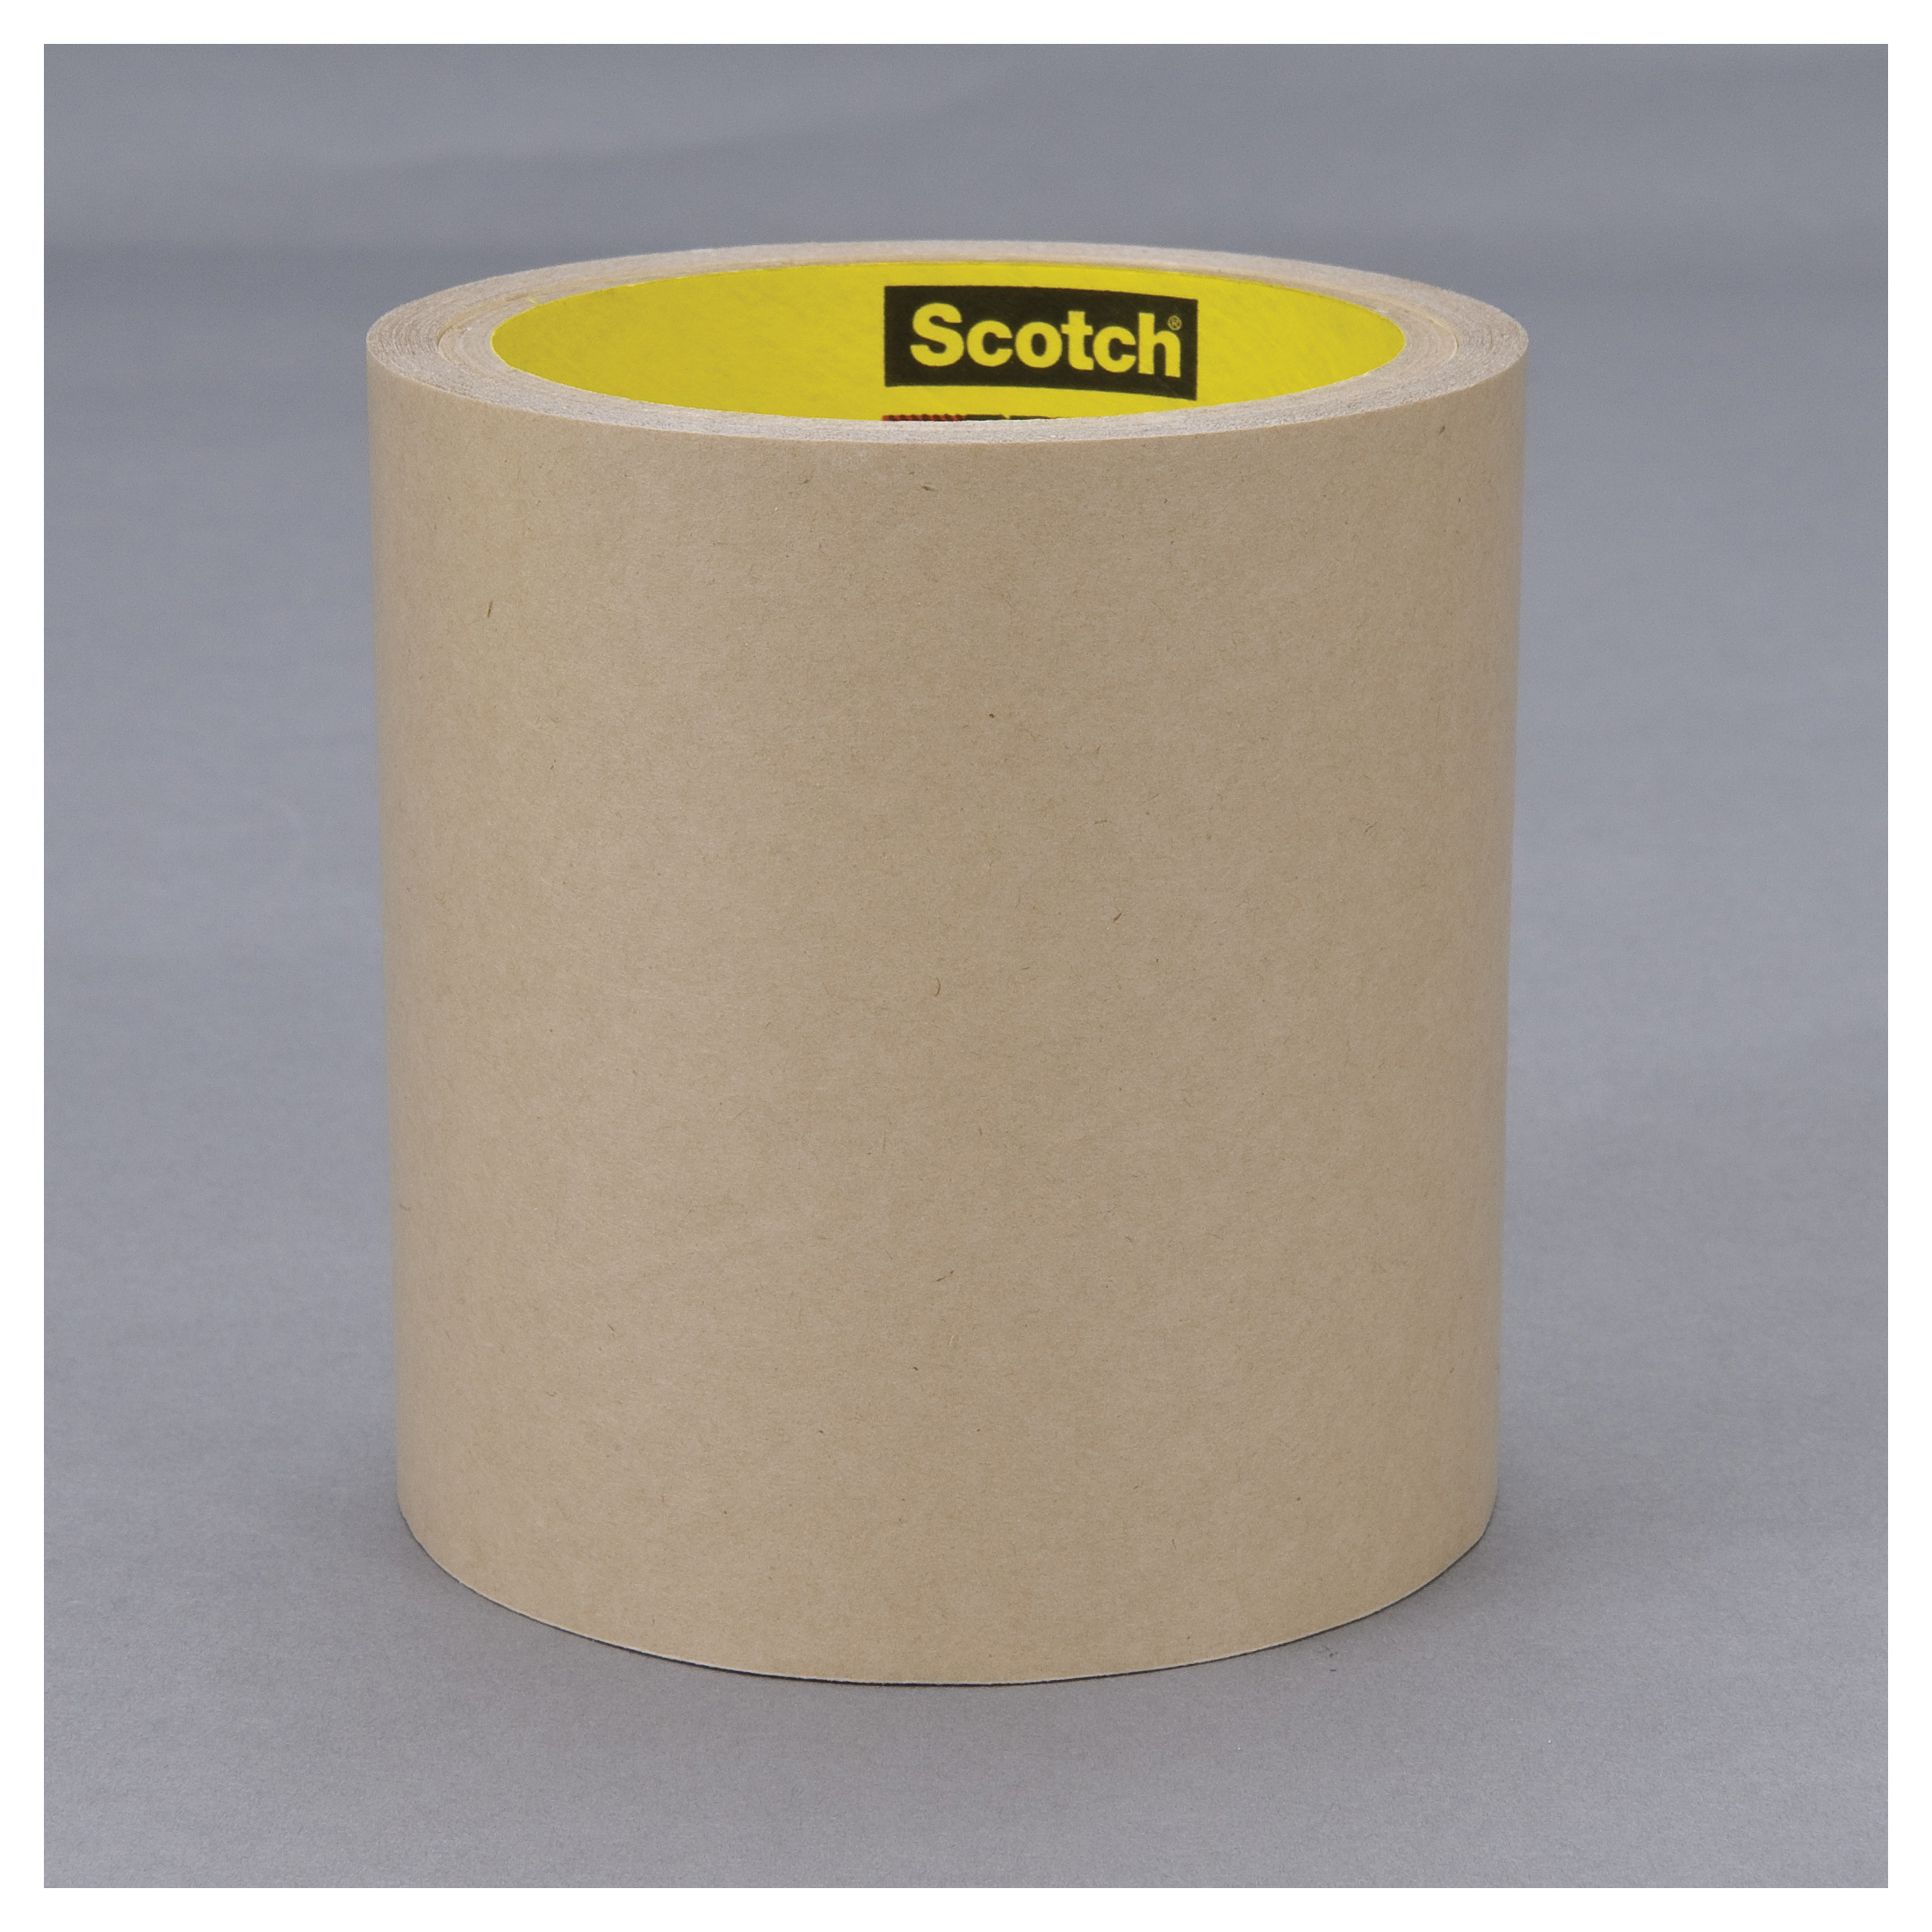 3M™ 021200-63474 High Tack Adhesive Transfer Tape, 60 yd L x 1/2 in W, 6.2 mil THK, 2 mil 350 Acrylic Adhesive, Clear